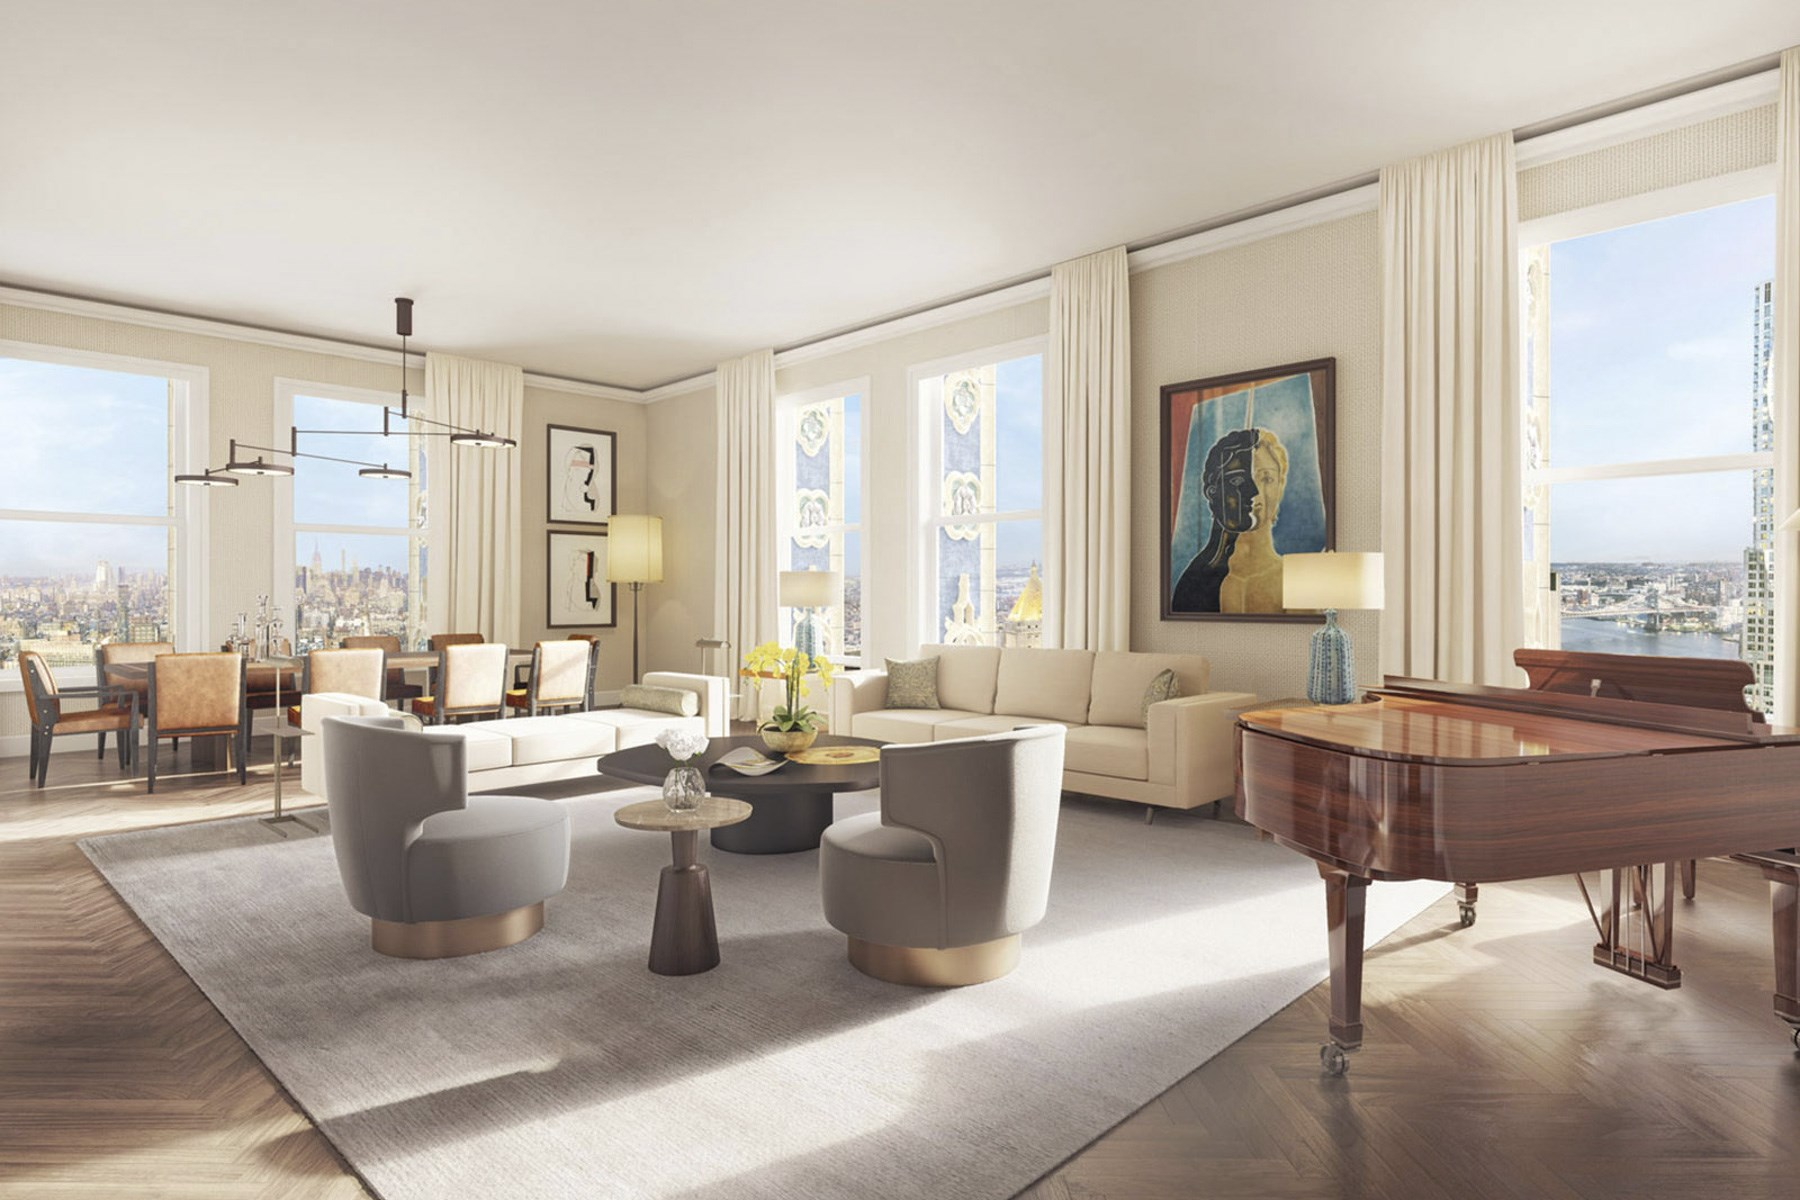 Condominium for Sale at The Woolworth Tower Residences - 40AB 2 Park Place Apt 40AB Tribeca, New York, New York, 10007 United States